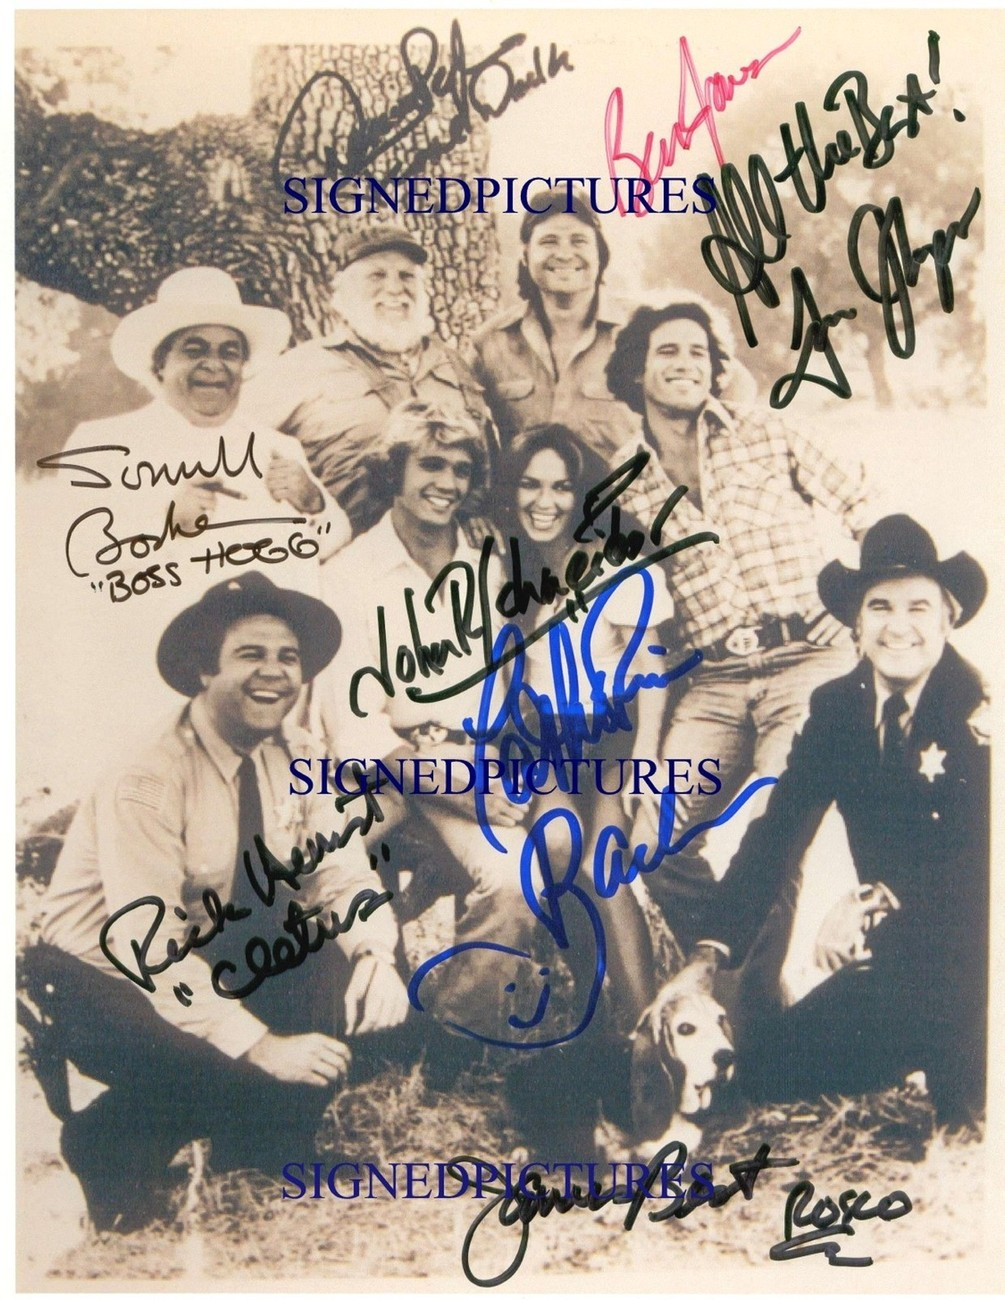 THE DUKES OF HAZZARD CAST SIGNED AUTOGRAPHED AUTOGRAM 8x10 RP PHOTO ALL 8 HAZARD